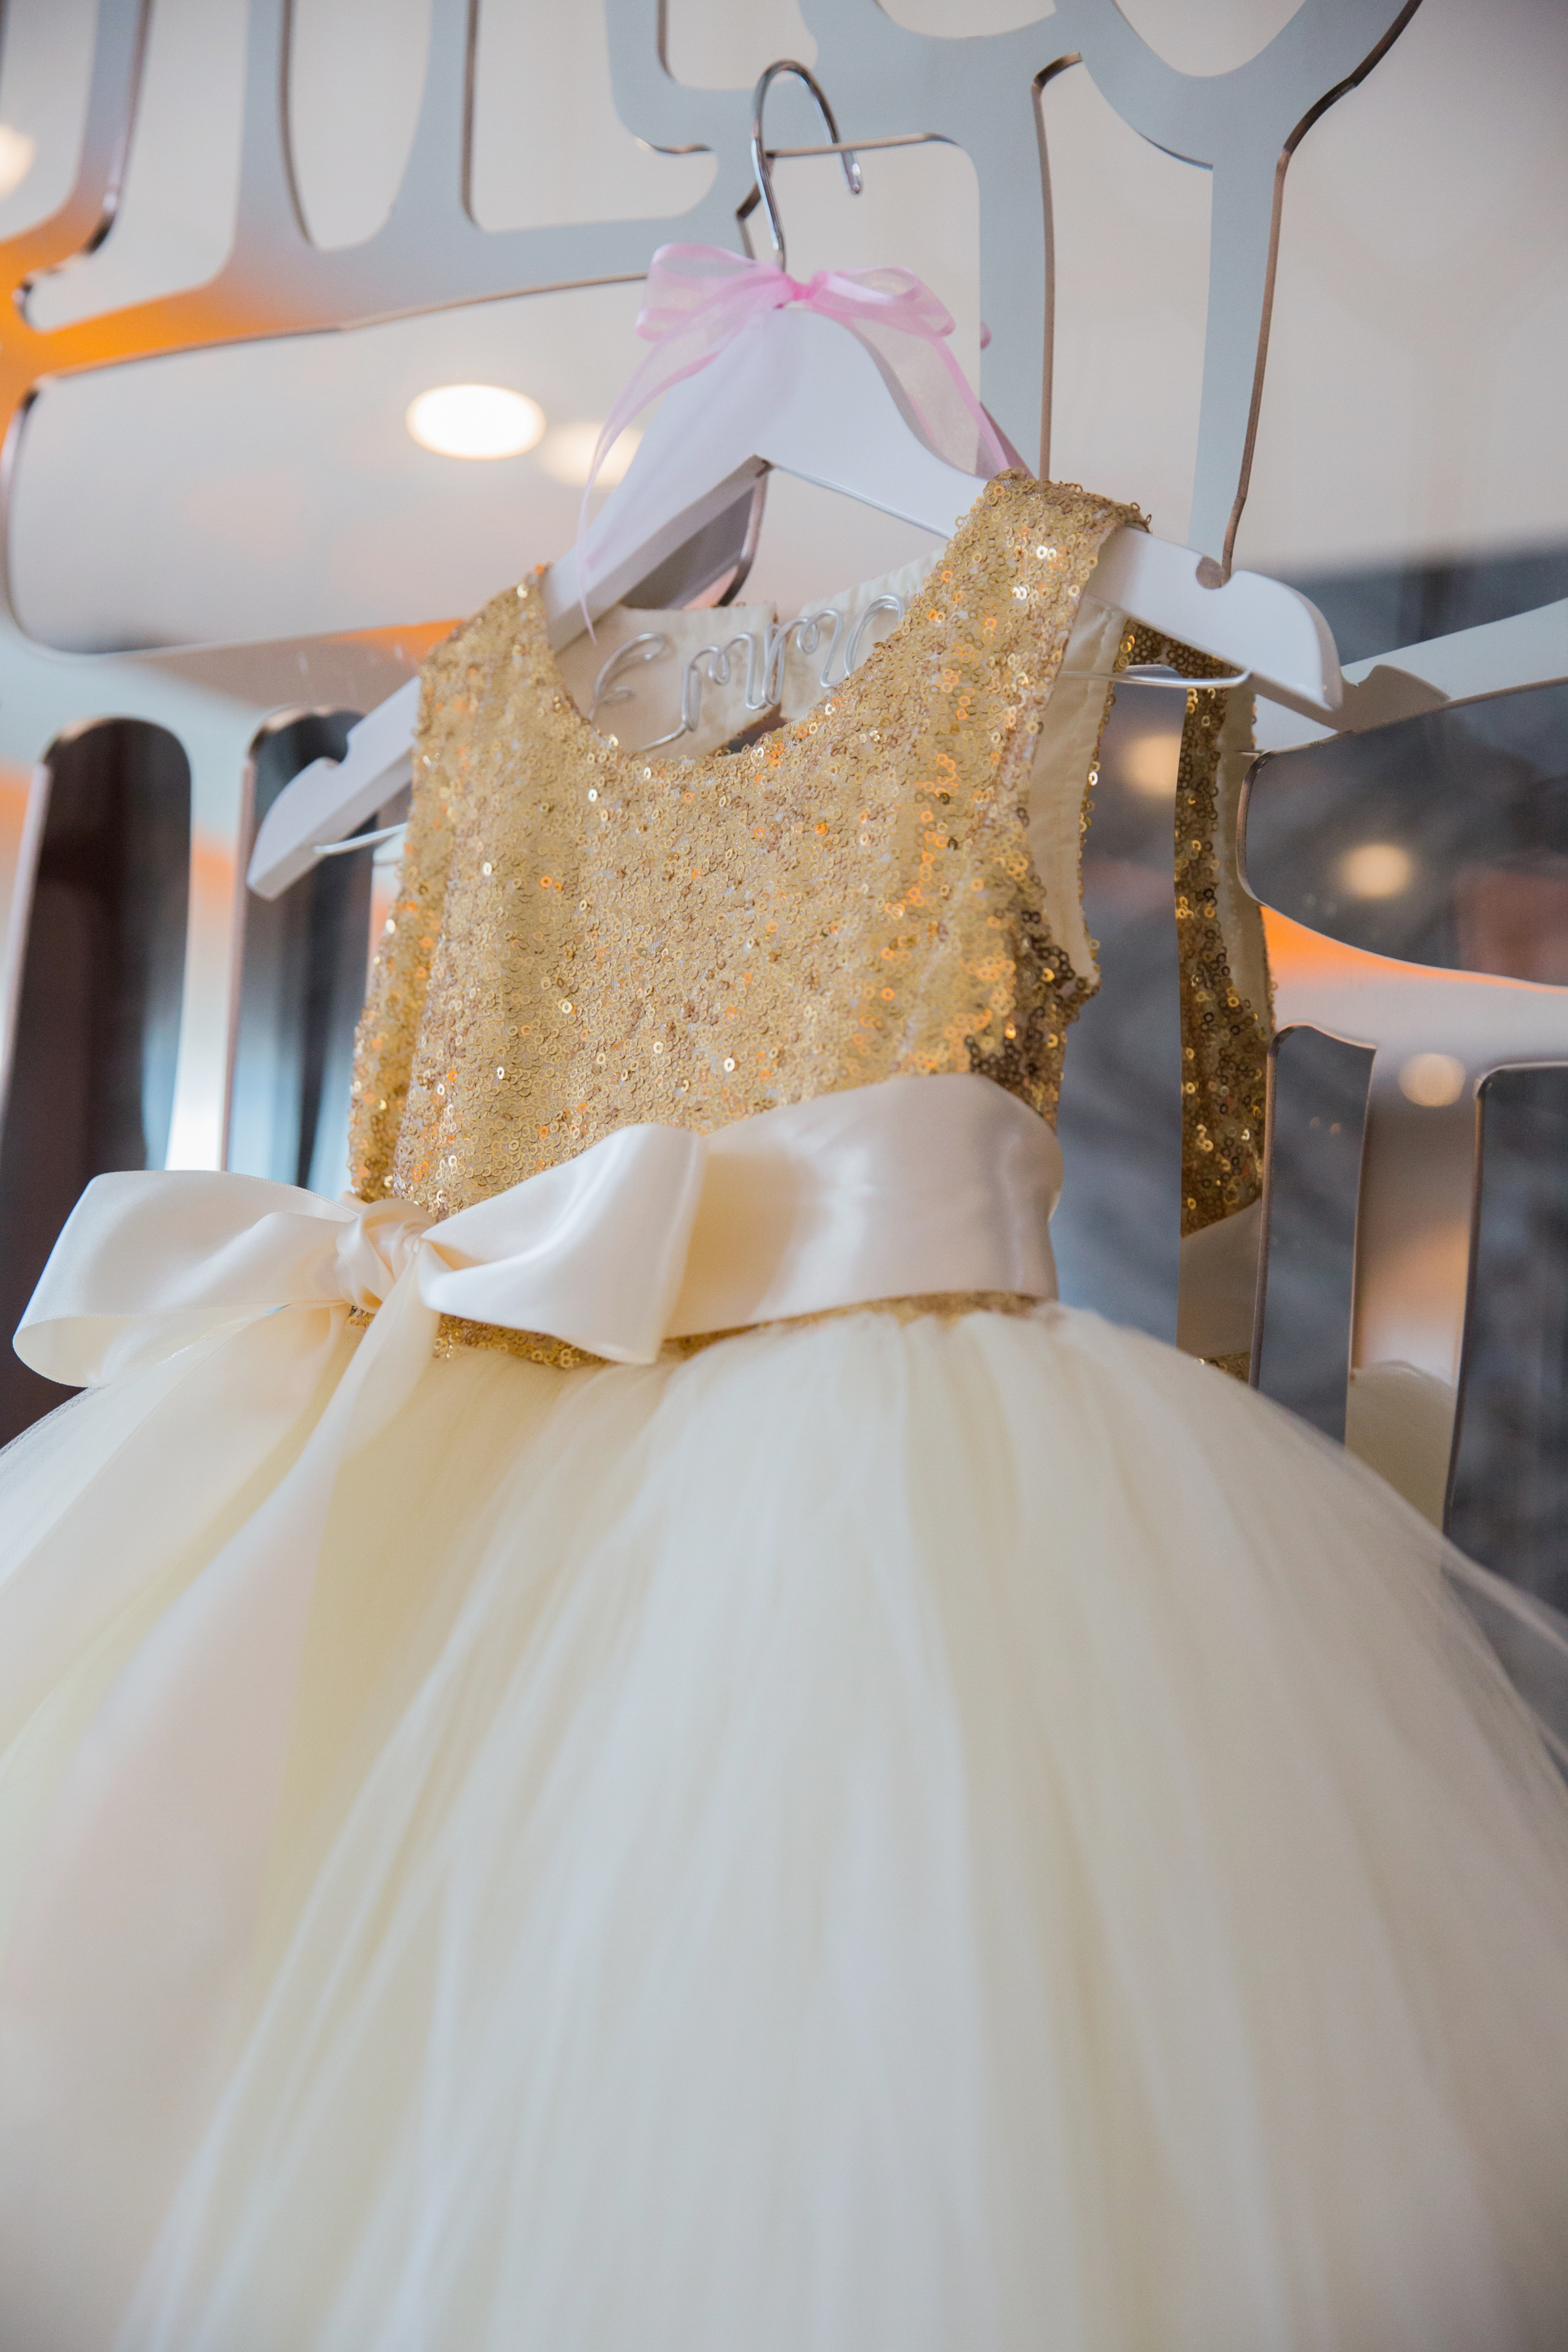 Bridesmaid Dress in Ivory and Gold.Luxury wedding at the Mandarin Oriental with a color scheme of white, blush, and pops of wine red produced by Las Vegas Wedding Planner Andrea Eppolito with photos by Stephen Salazar Photography.